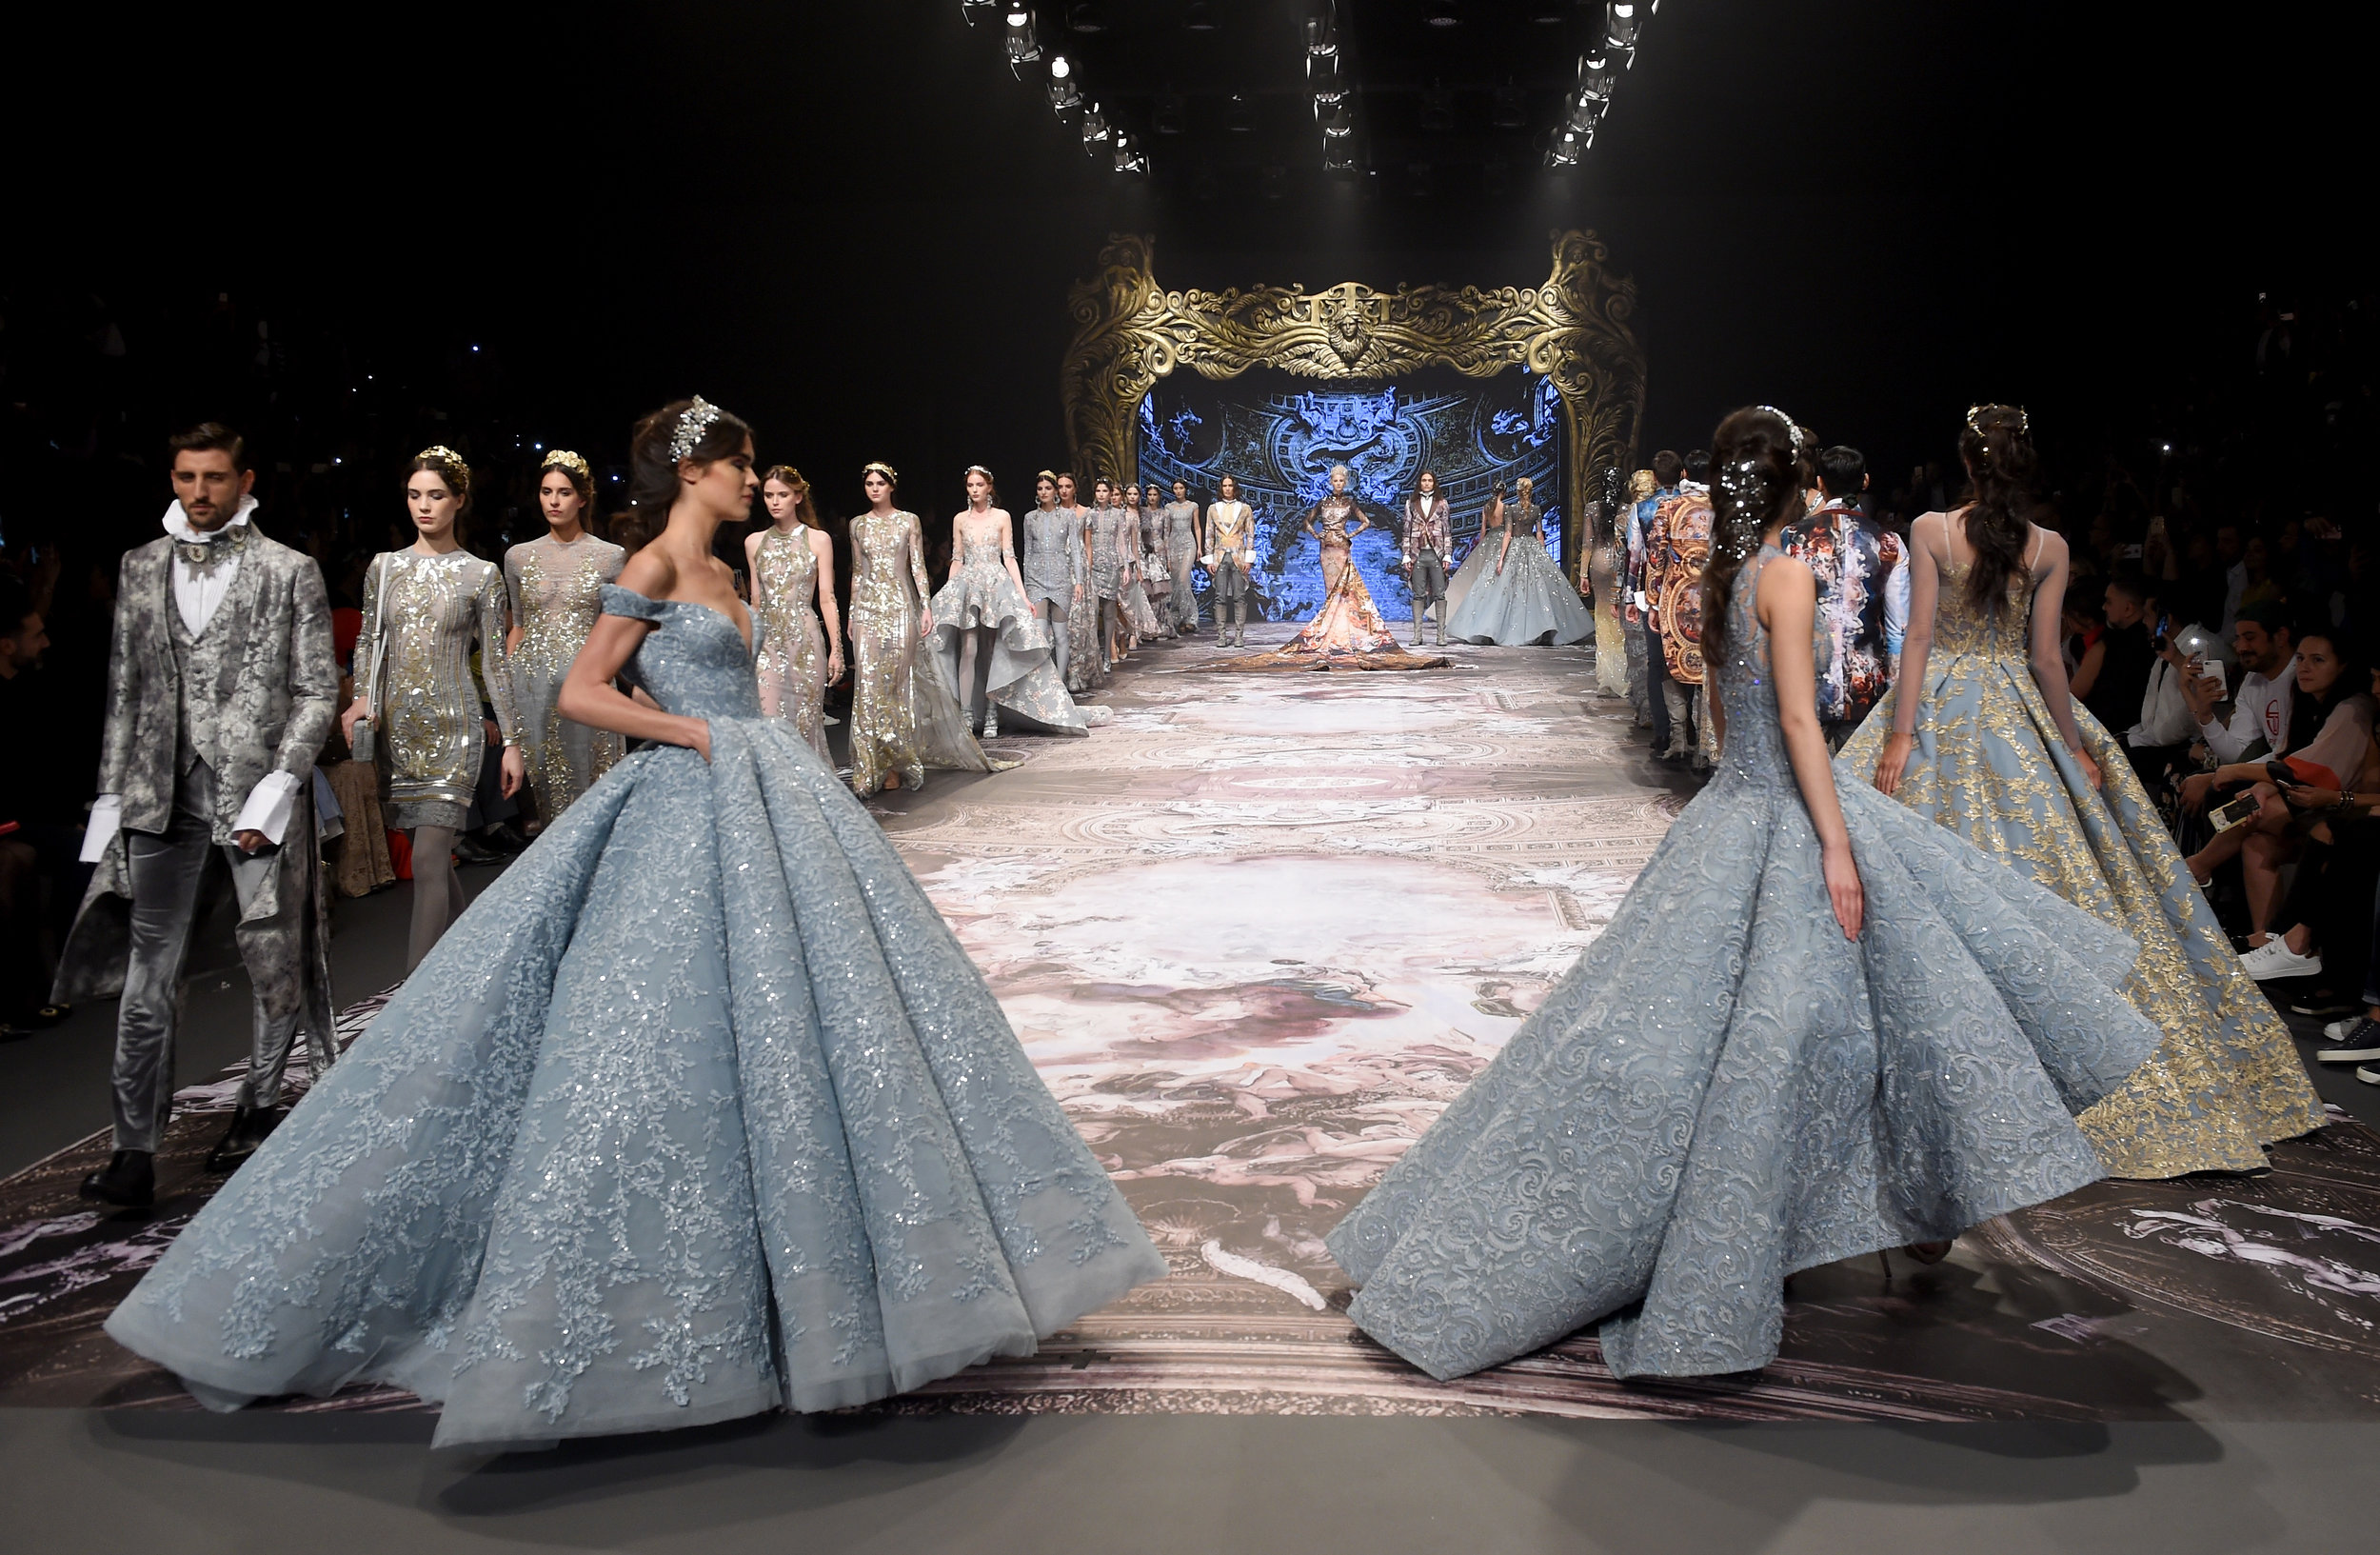 Couture king Michael Cinco had the audience in awe